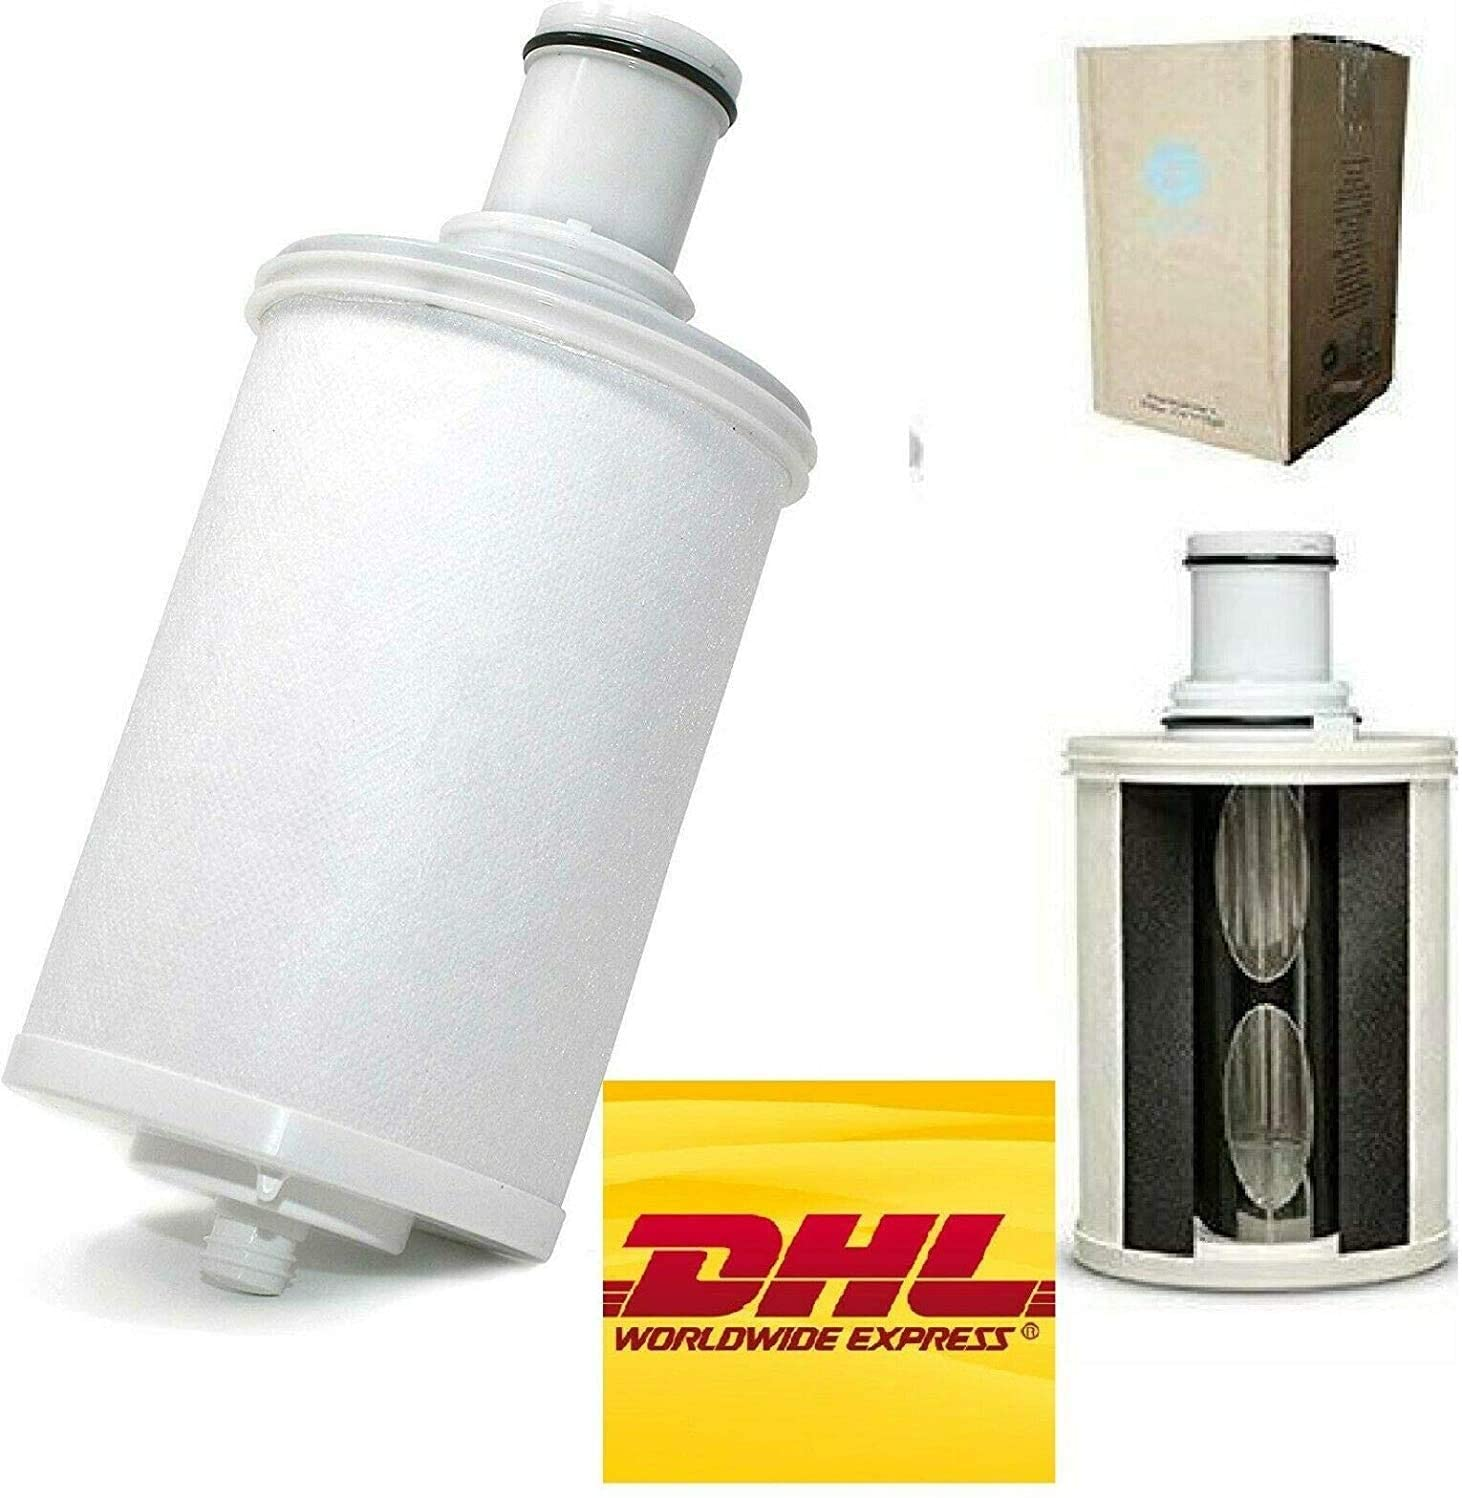 ESPRING UV Light Water Replacement Cartridge WITH PRE-FILTER #100186